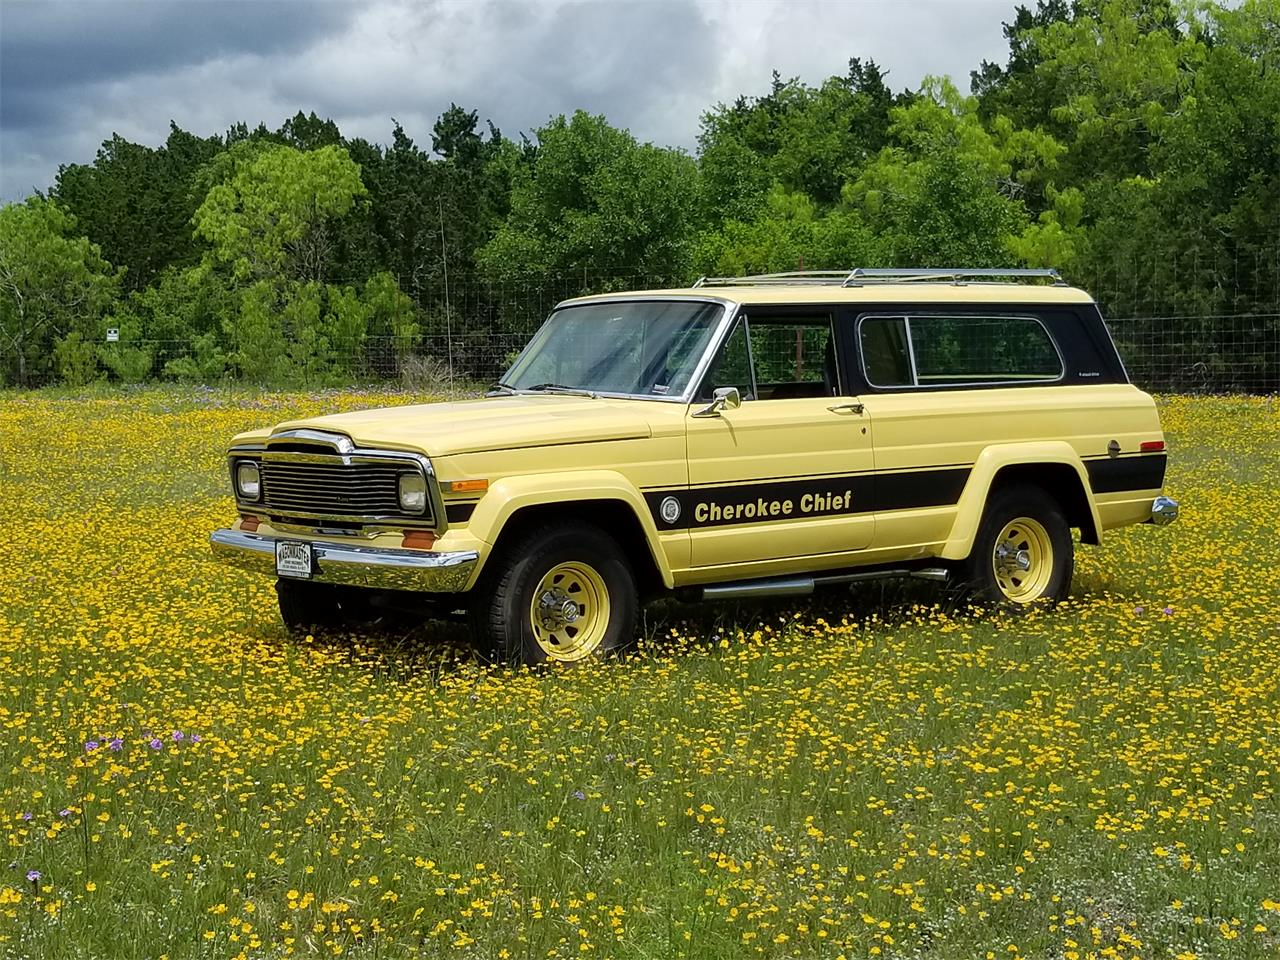 1979 Jeep Cherokee Chief for sale in Kerrville, TX – photo 2